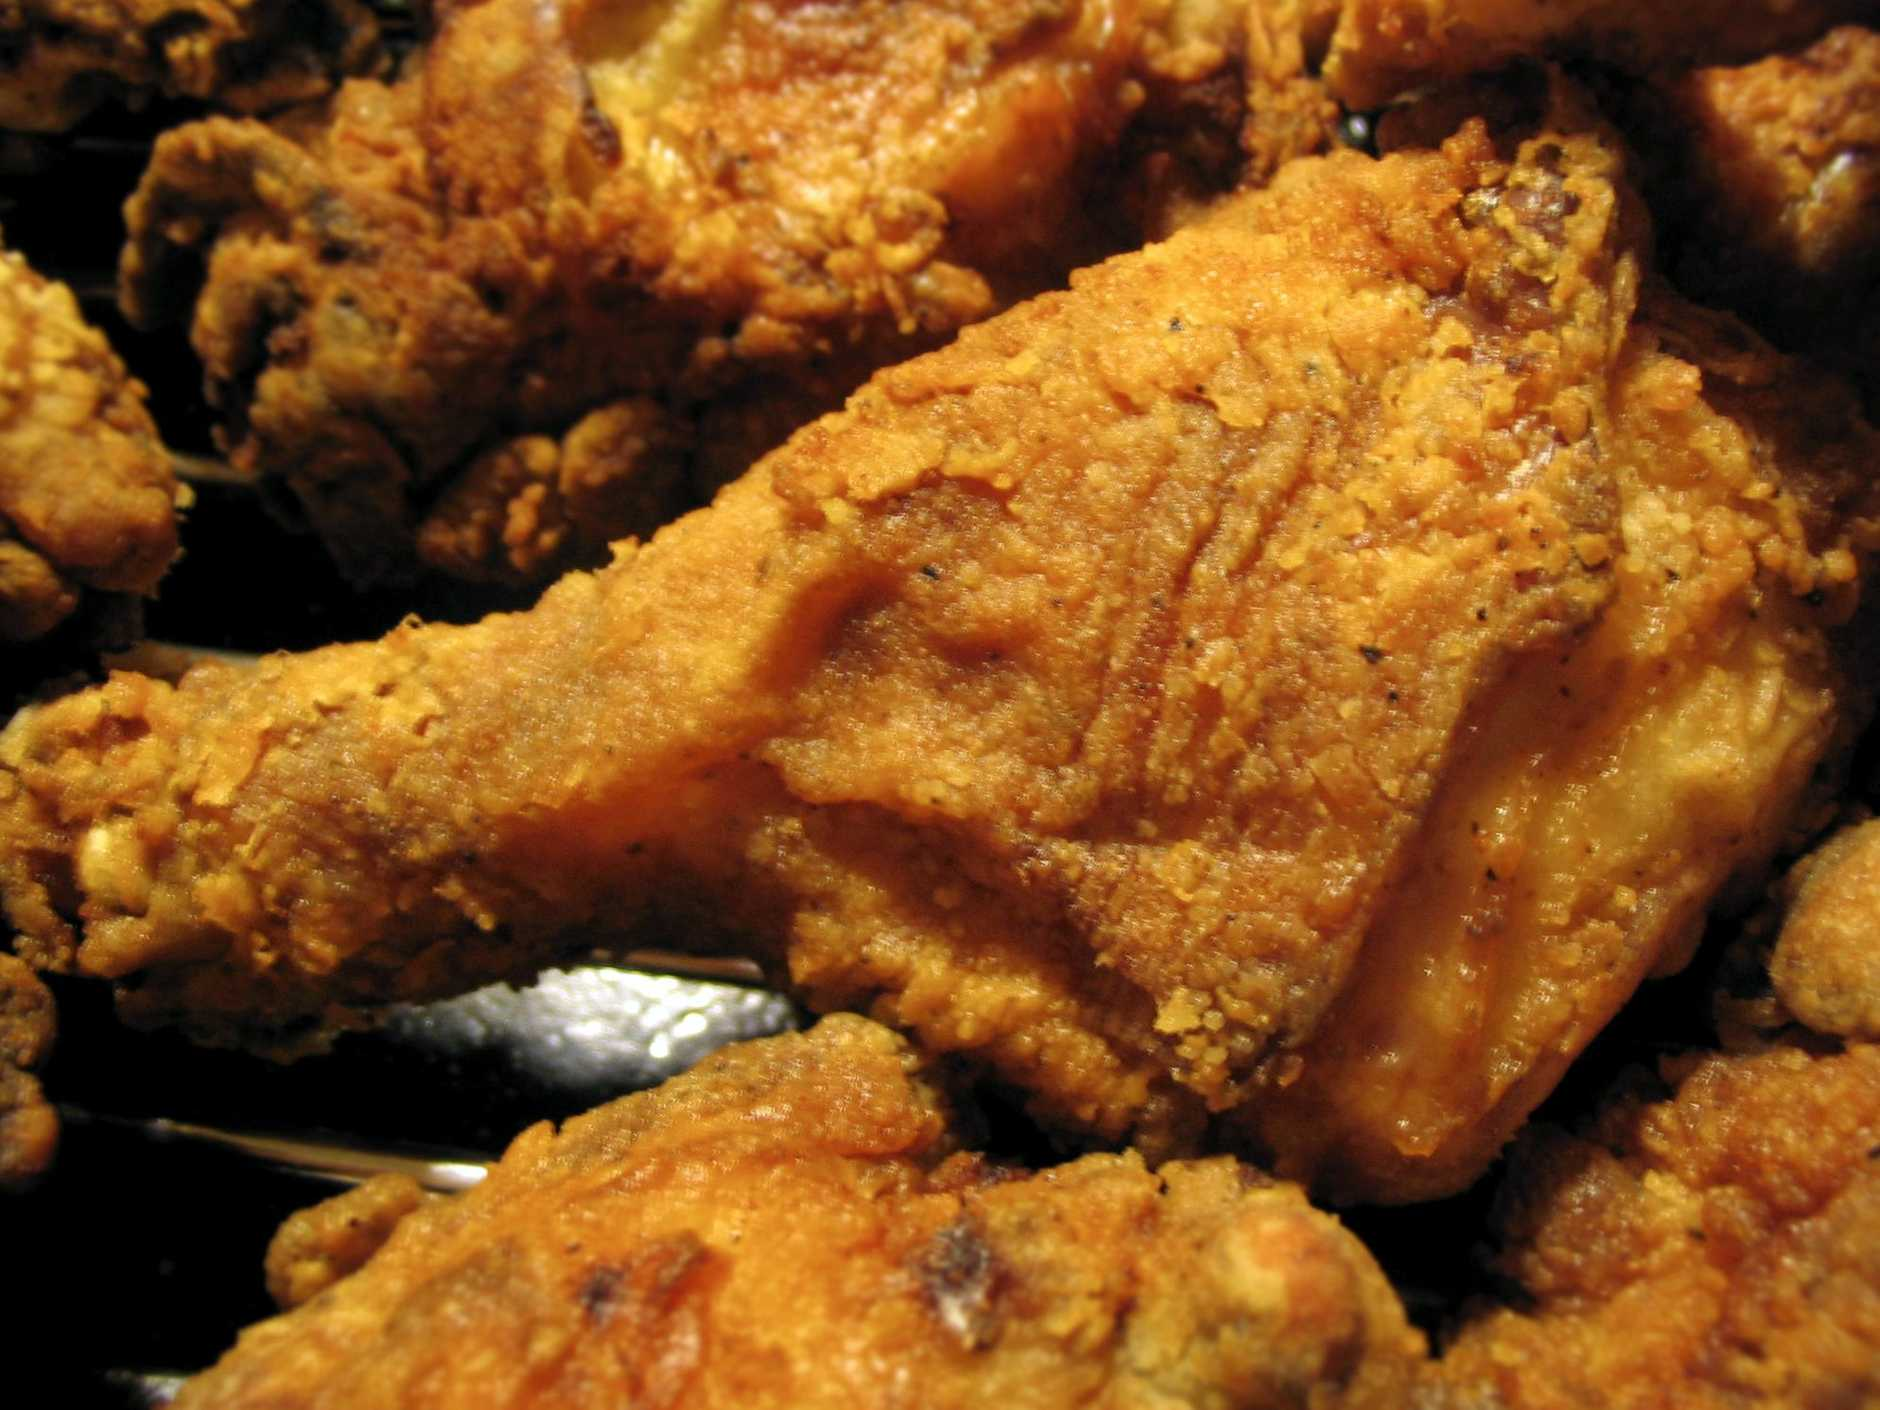 Foods laden in saturated fat, such as fried chicken, have been shown to disrupt the blood barrier which is a complicated system used by the body to get nutrients to the brain.